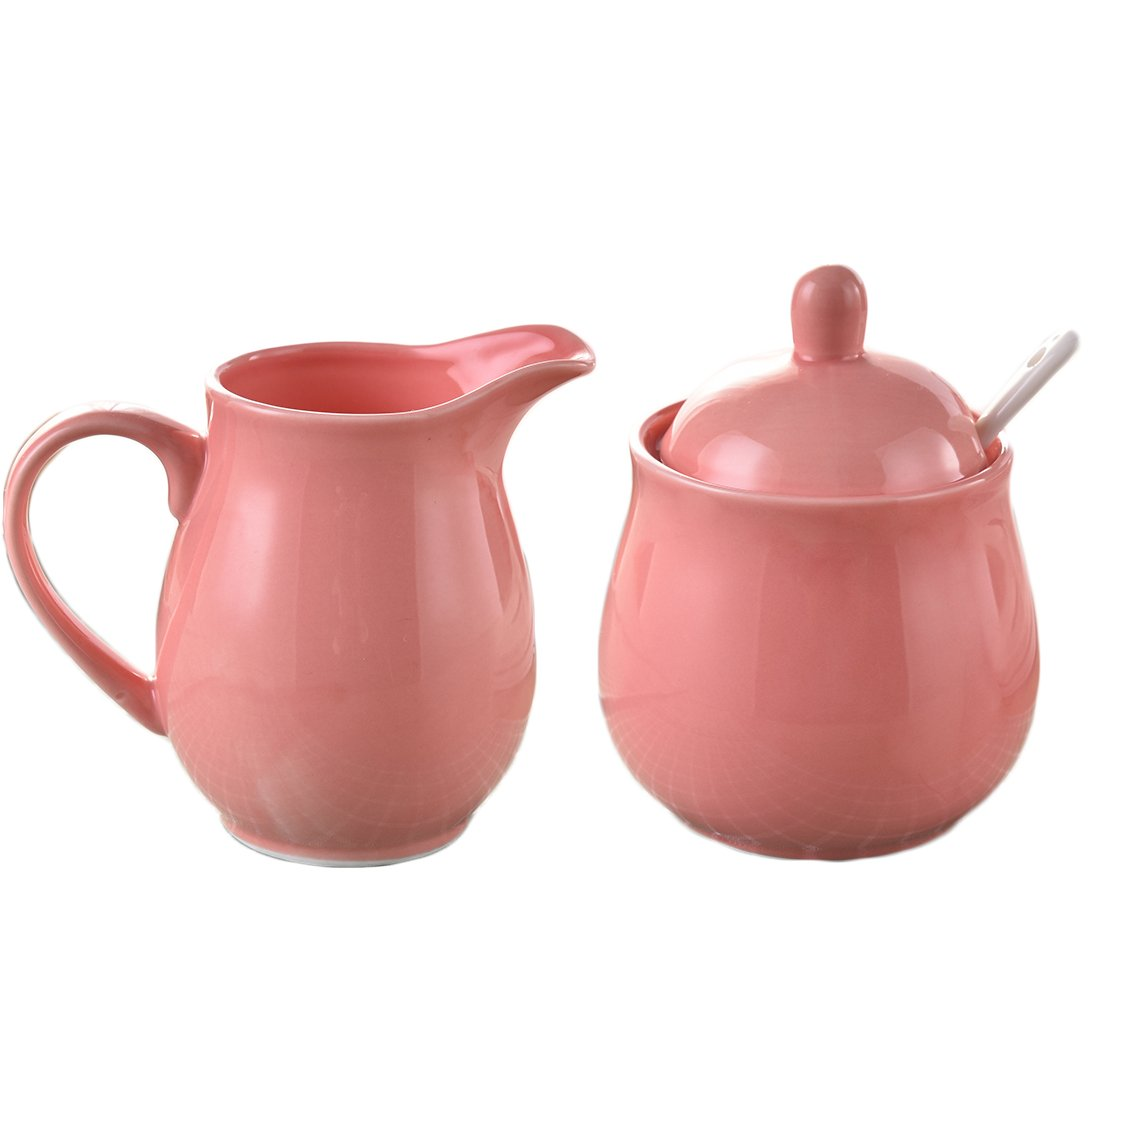 CHOOLD Colorful Ceramic Sugar and Creamer Set with Spoon, Creamer Serving Set for Coffee and Tea Best Gift(12oz)